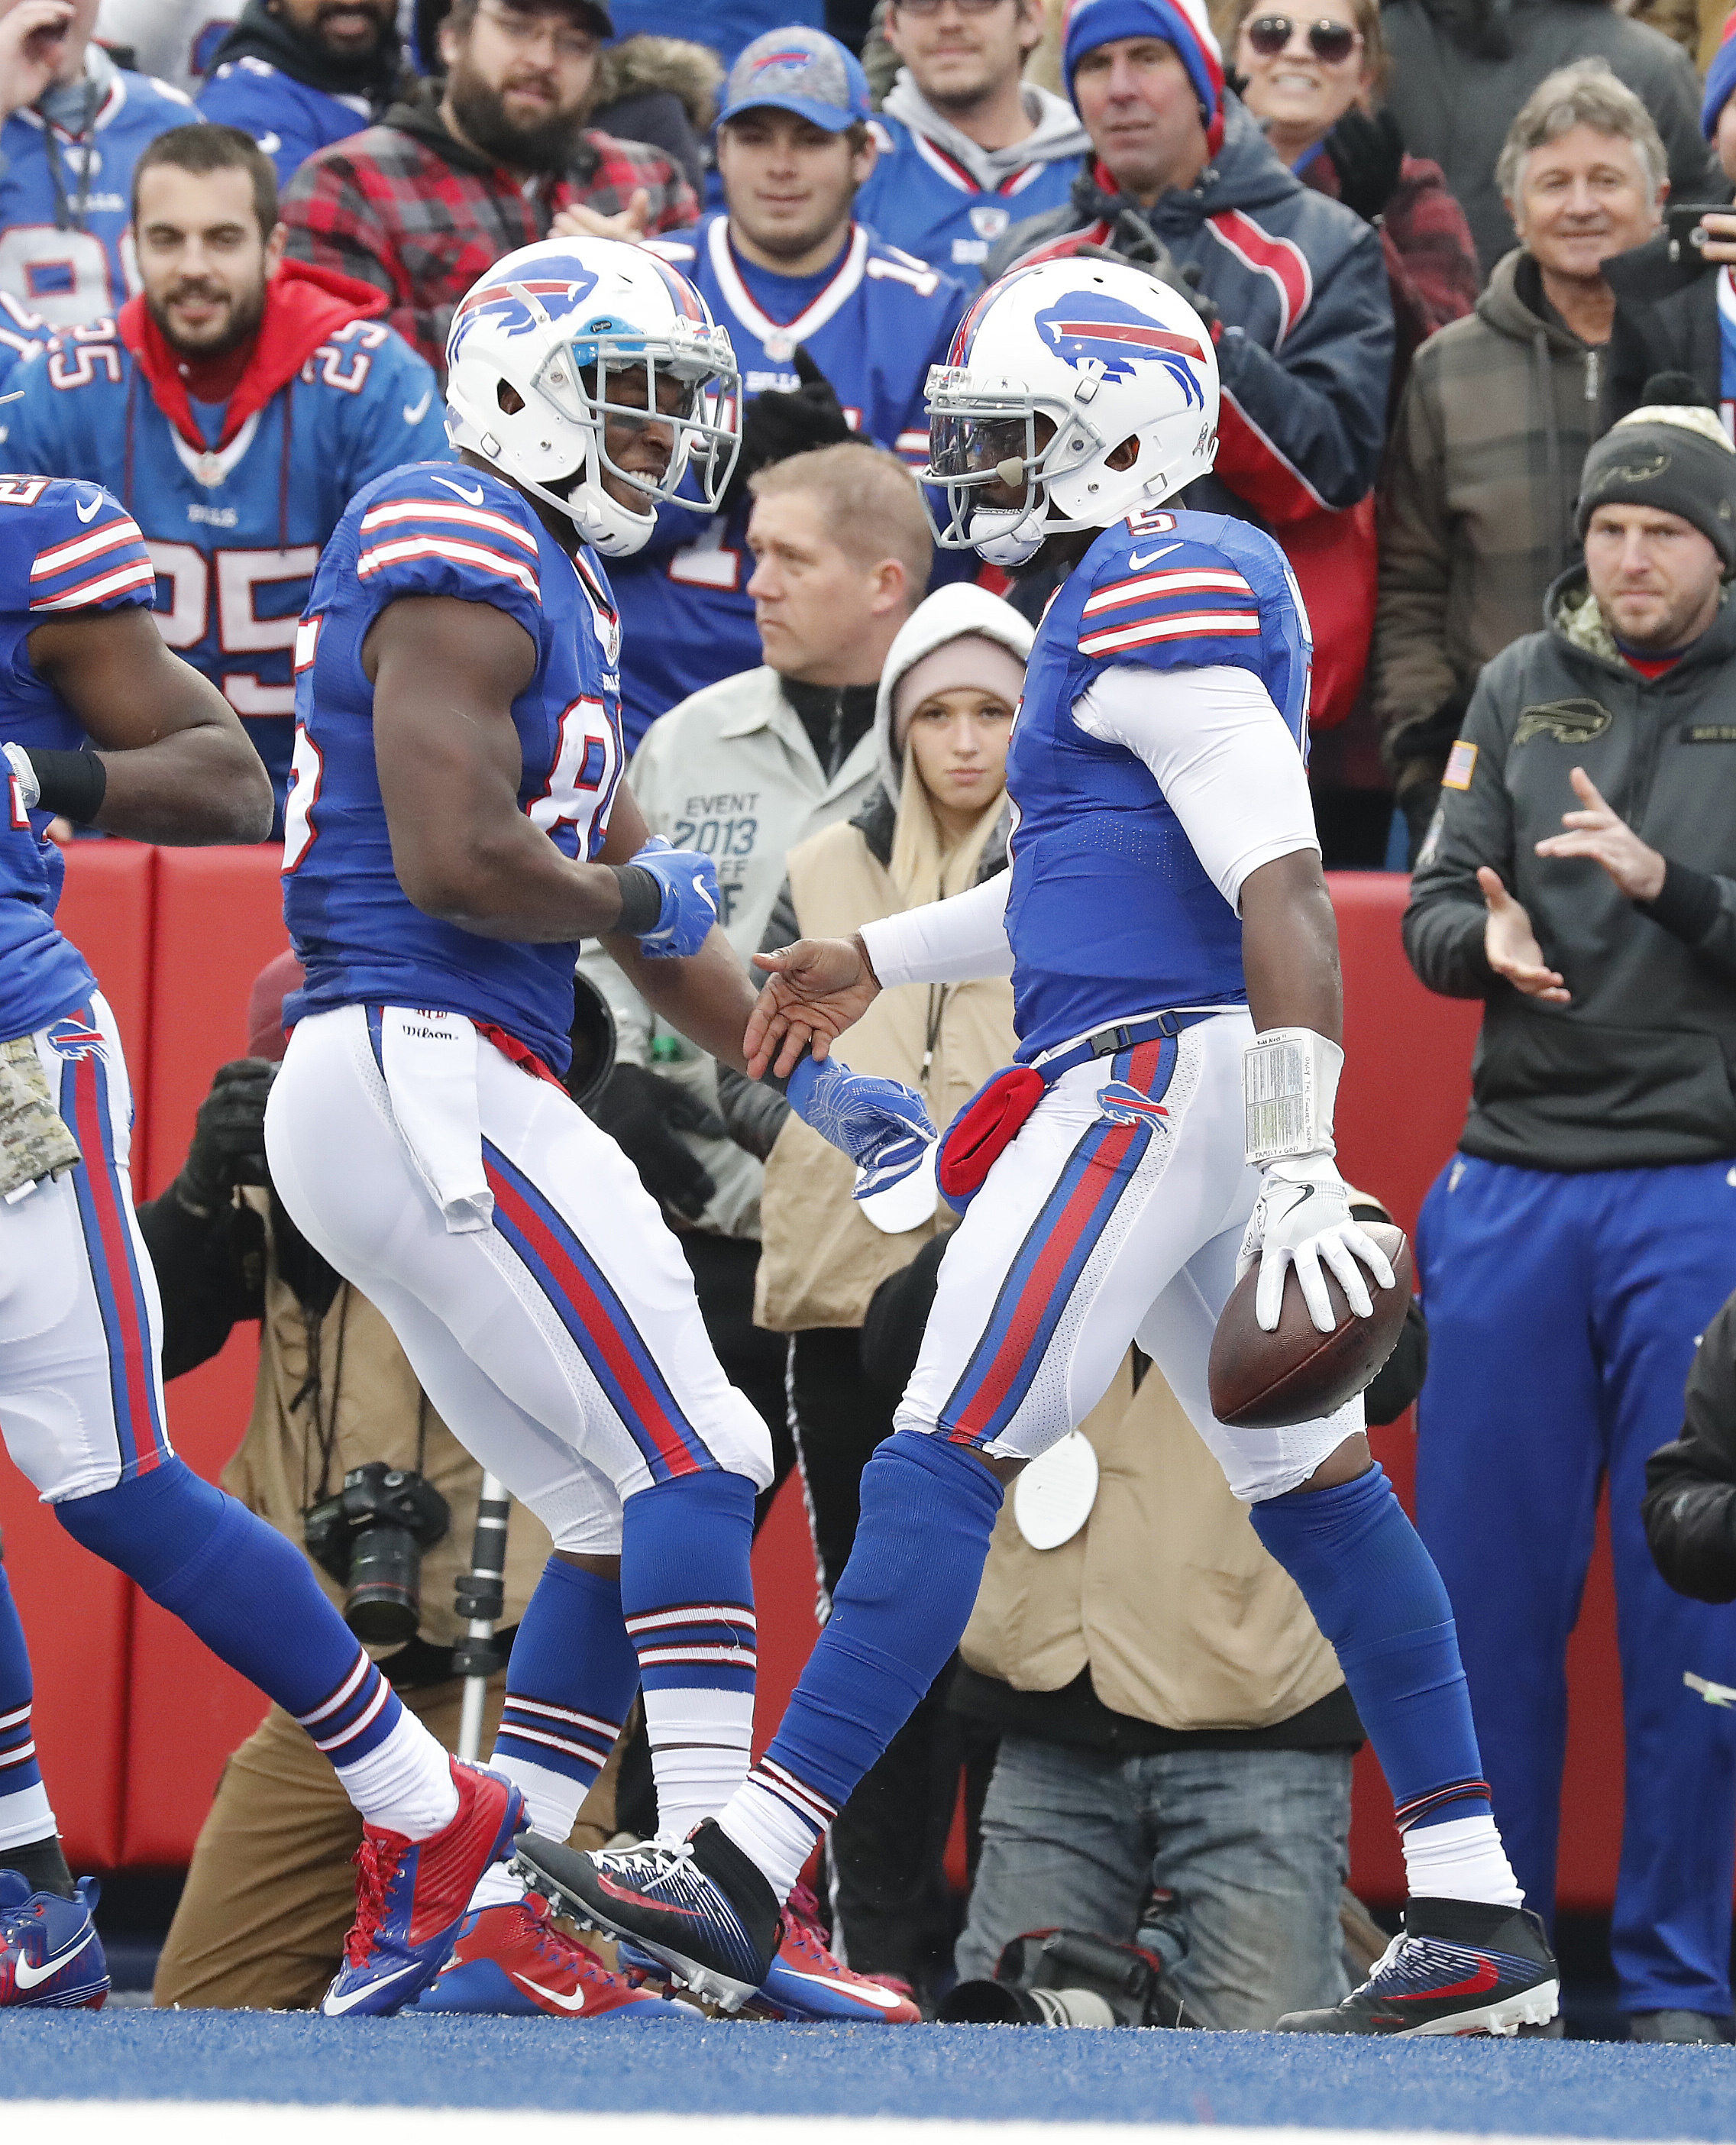 Buffalo Bills Tyrod Taylor is congratulated on his touchdown by Charles Clay agains the Jacksonville Jaguars during third quarter action at New Era Field on Sunday, Nov. 27, 2016. (Harry Scull Jr./Buffalo News)